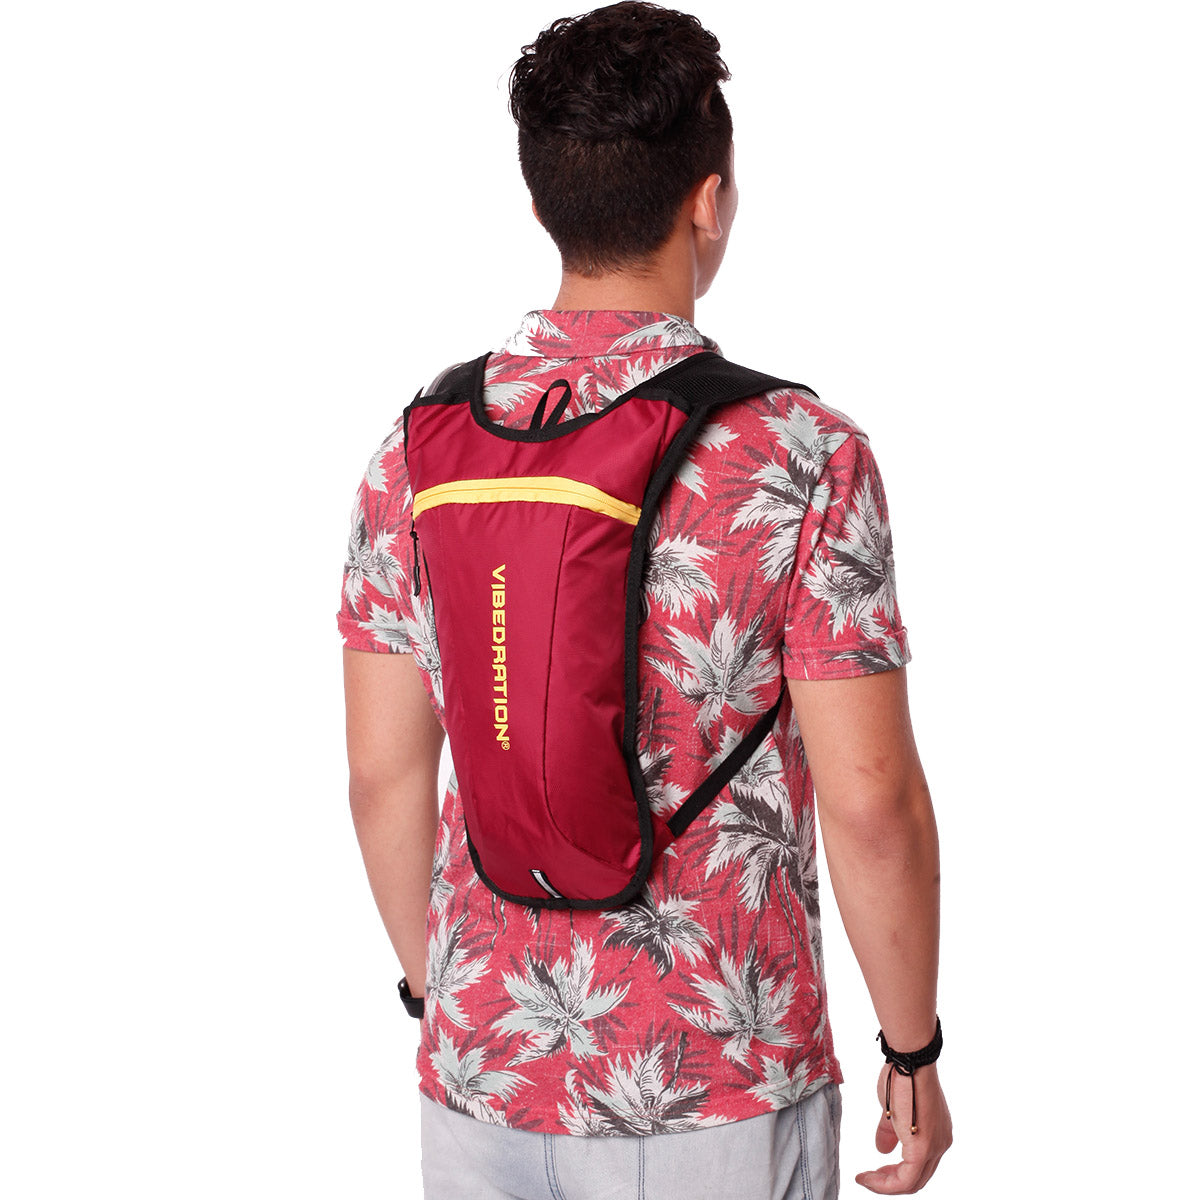 Side view of male wearing maroon and gold hydration pack.